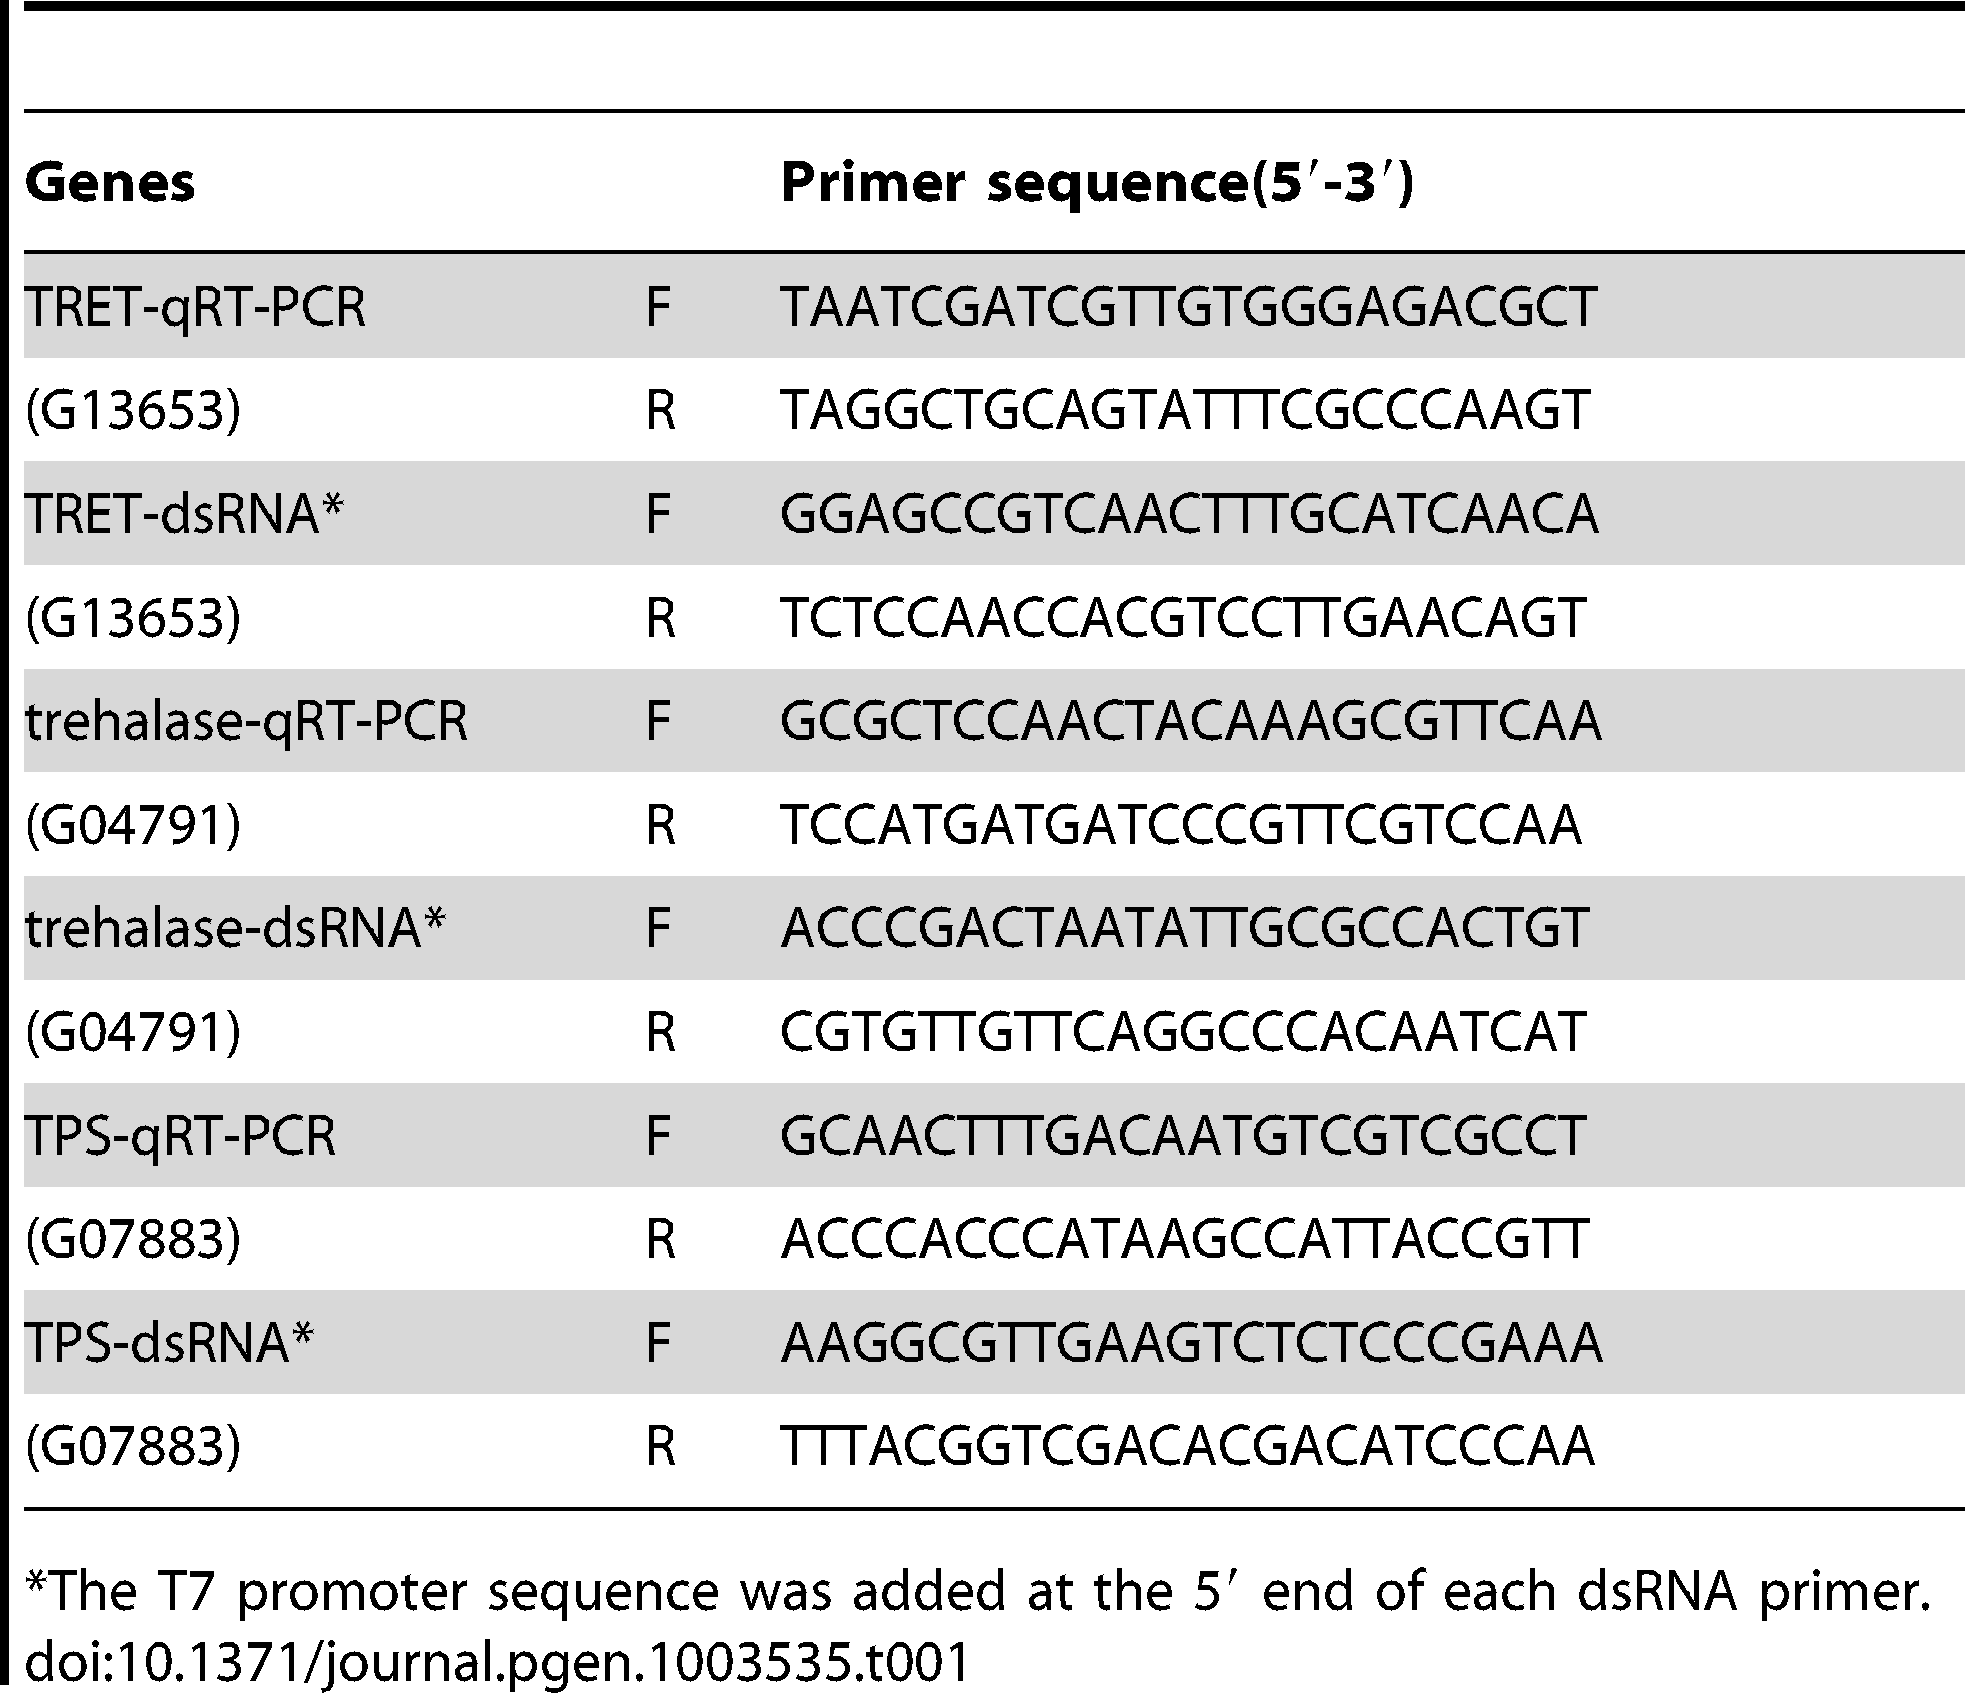 Primers used for dsRNA and real time PCR.